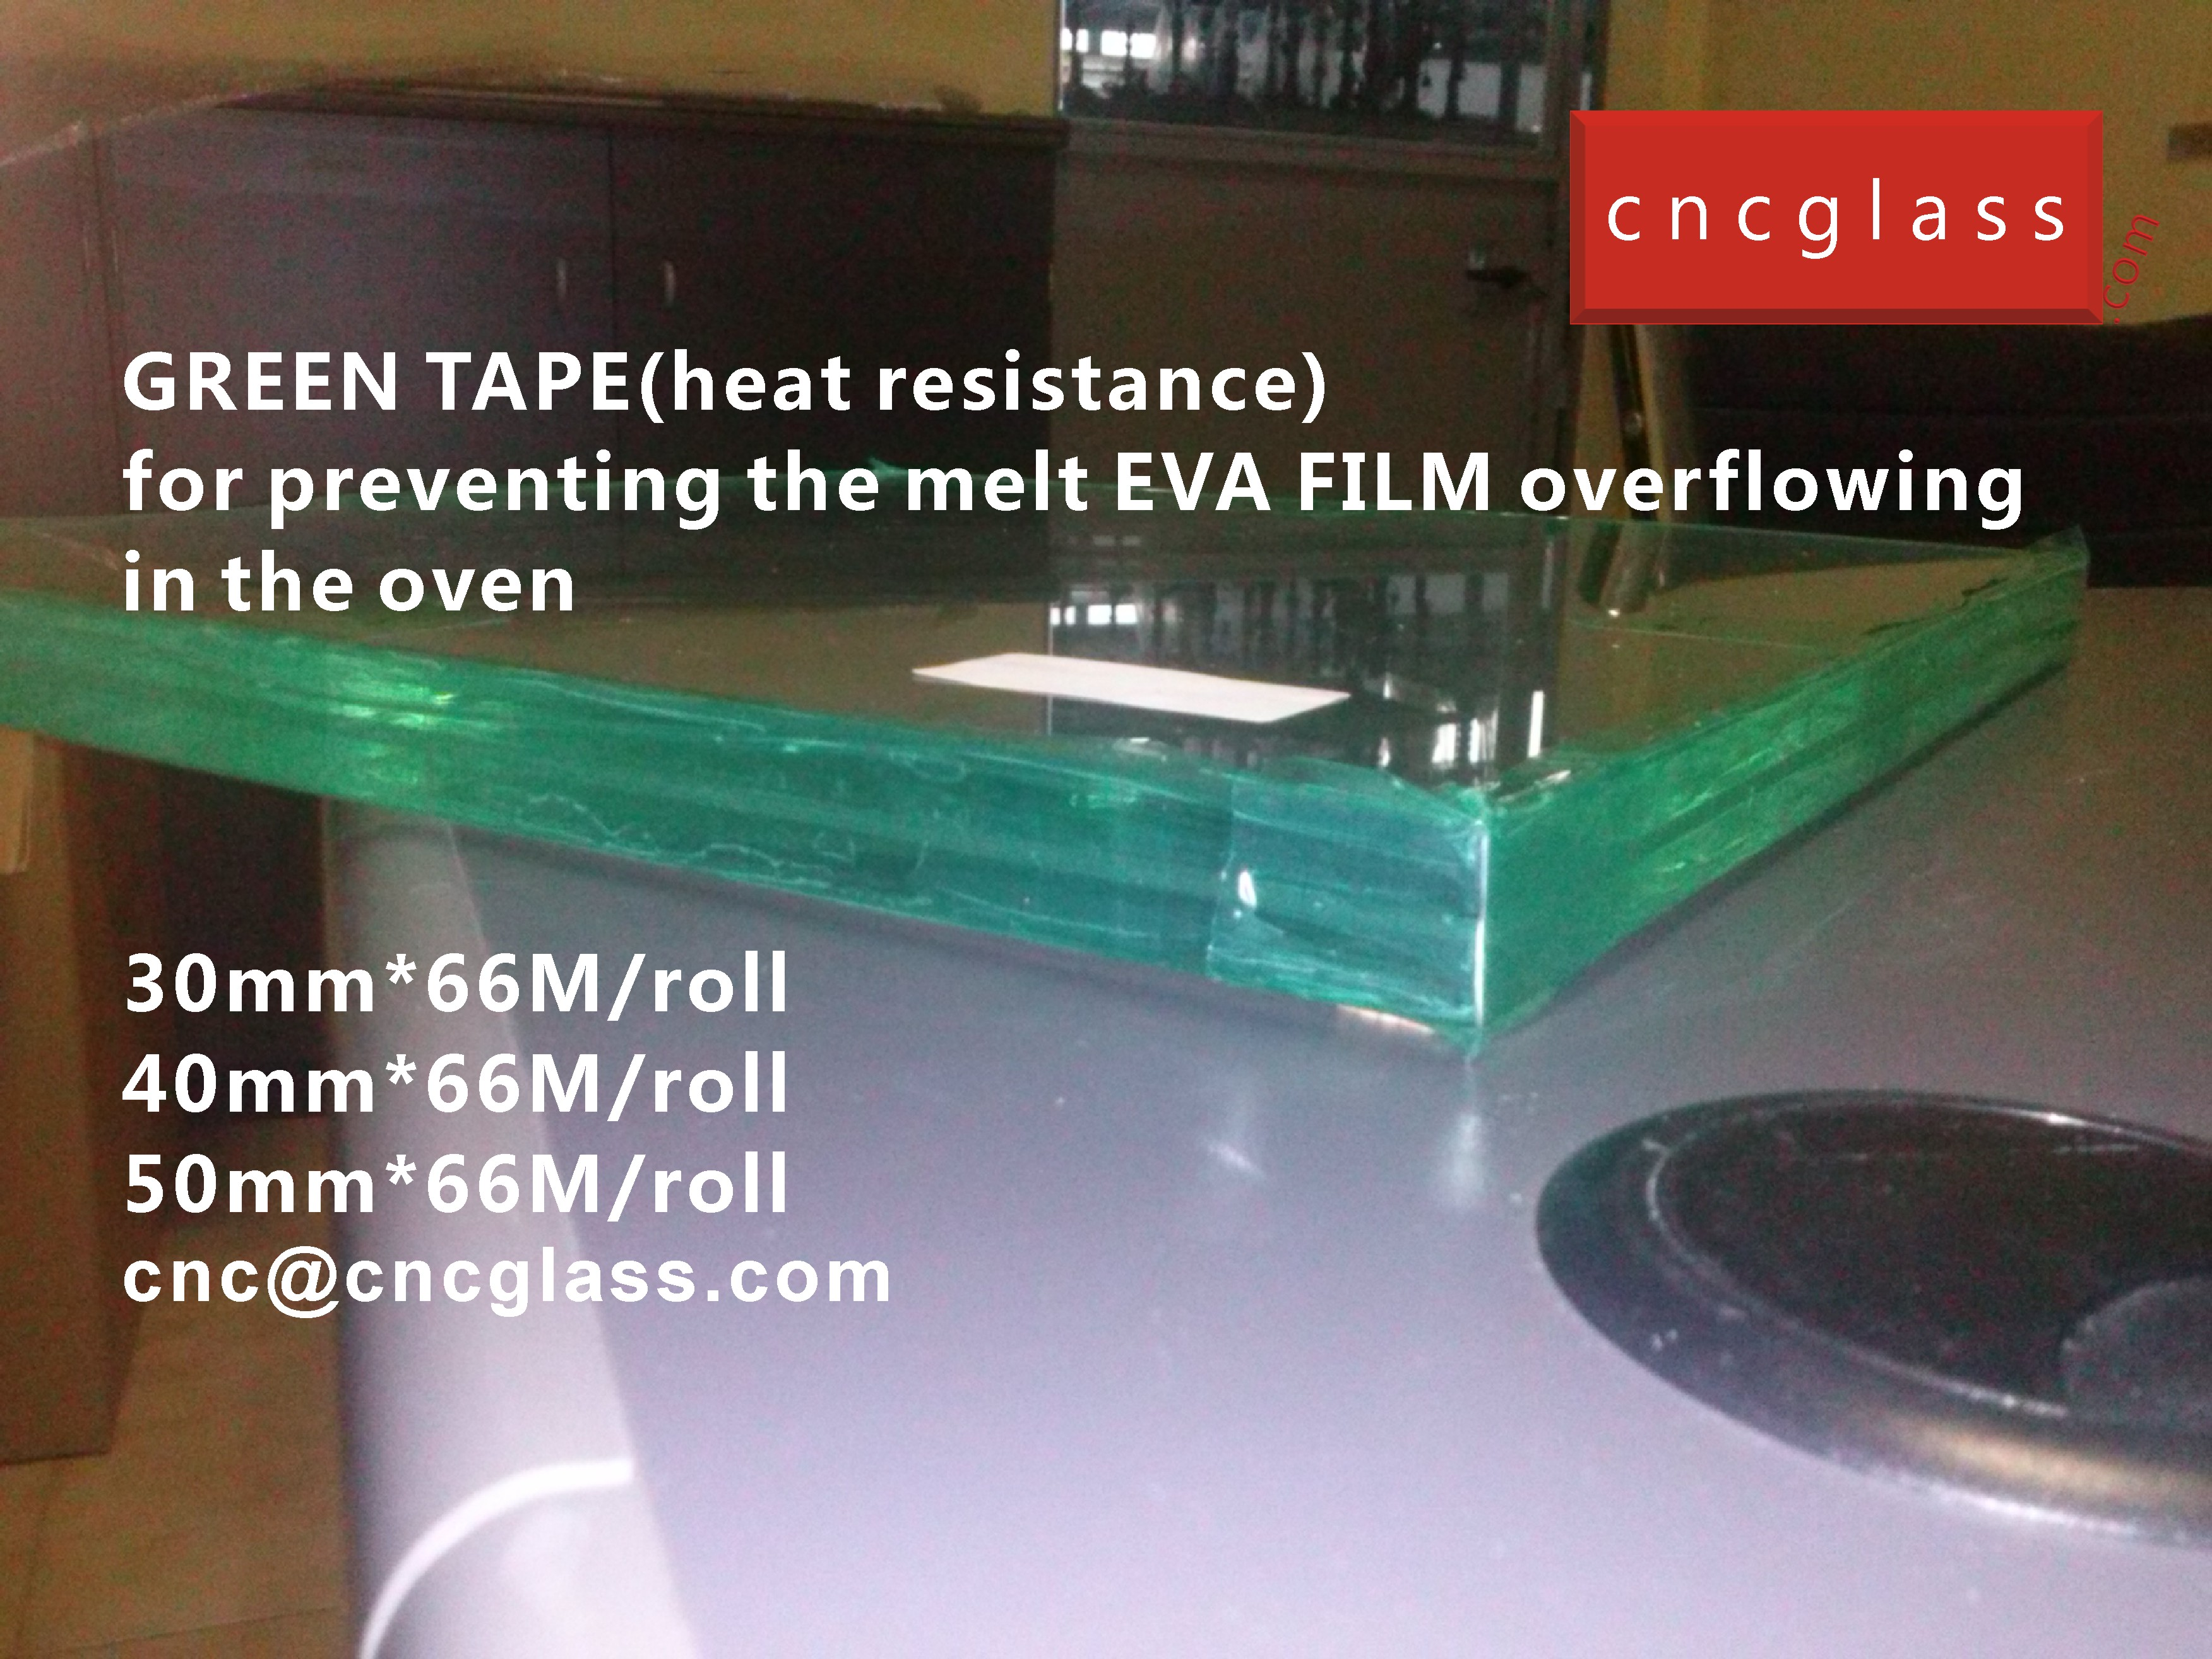 02 HOW TO USE GREEN TAPE(HEAT RESISTANCE) IN EVA FILM GLASS LAMINATING